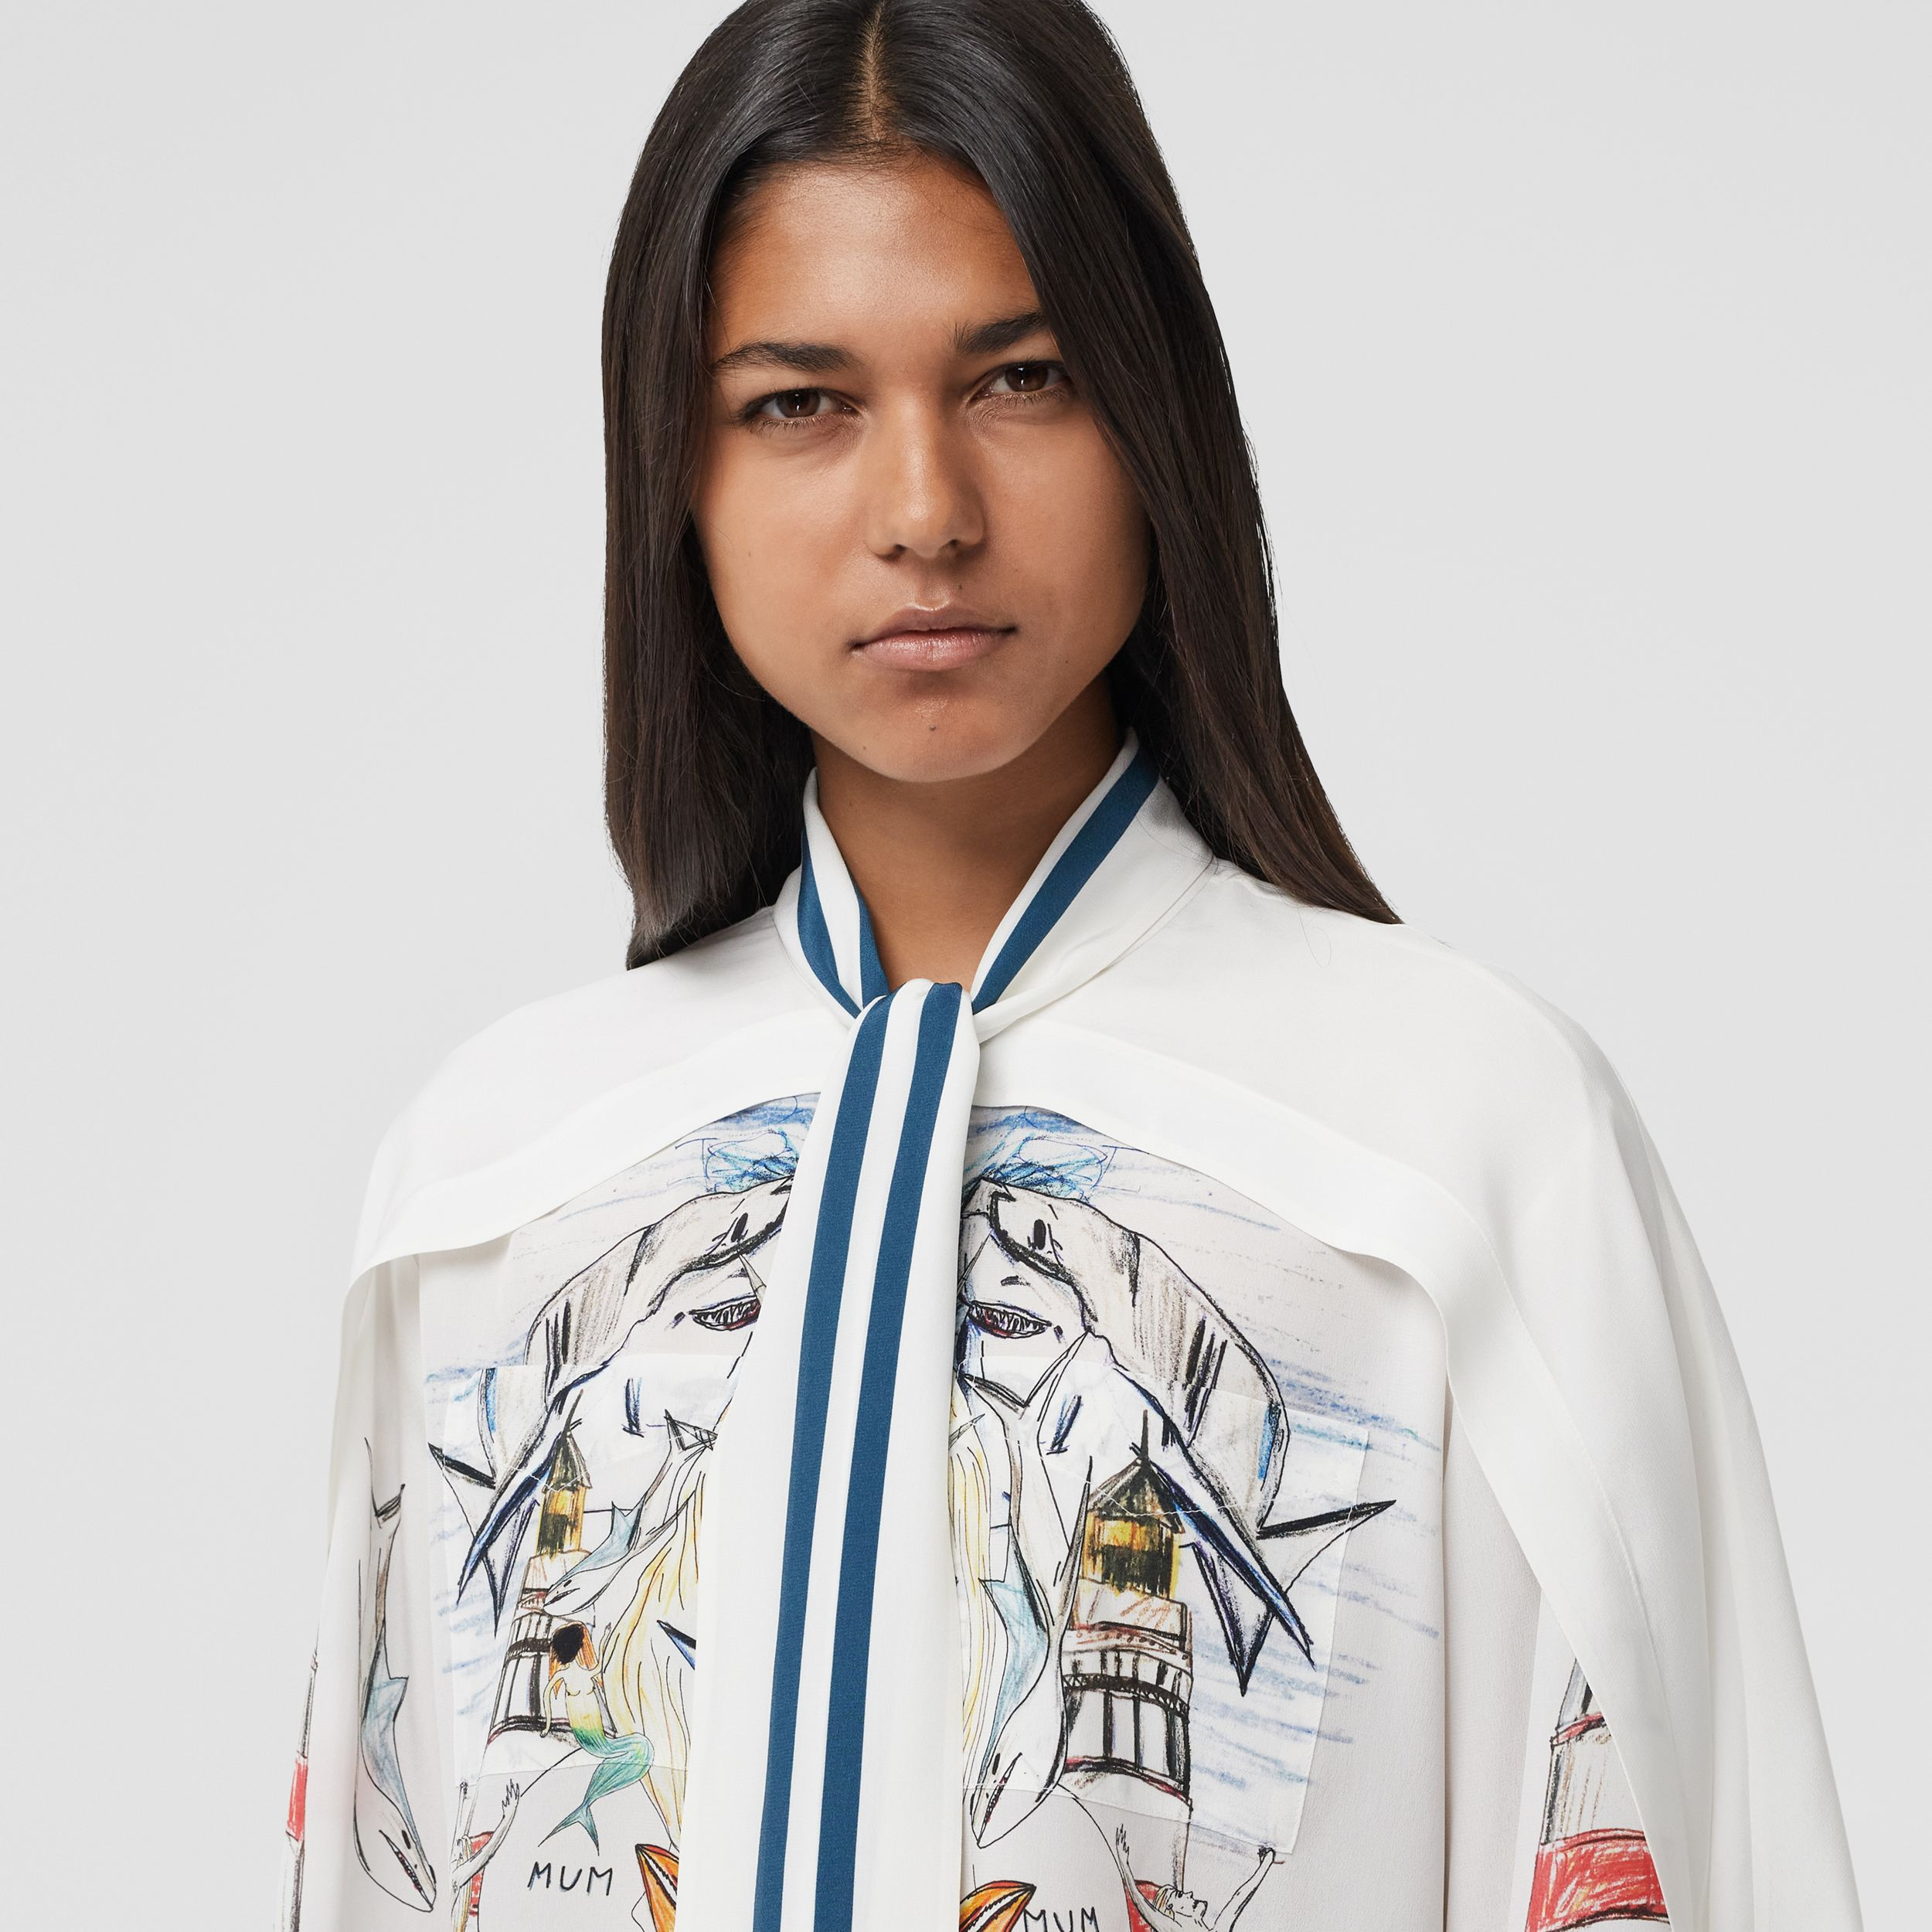 Cape Detail Marine Sketch Print Silk Tie-neck Shirt in White - Women | Burberry United States - 2